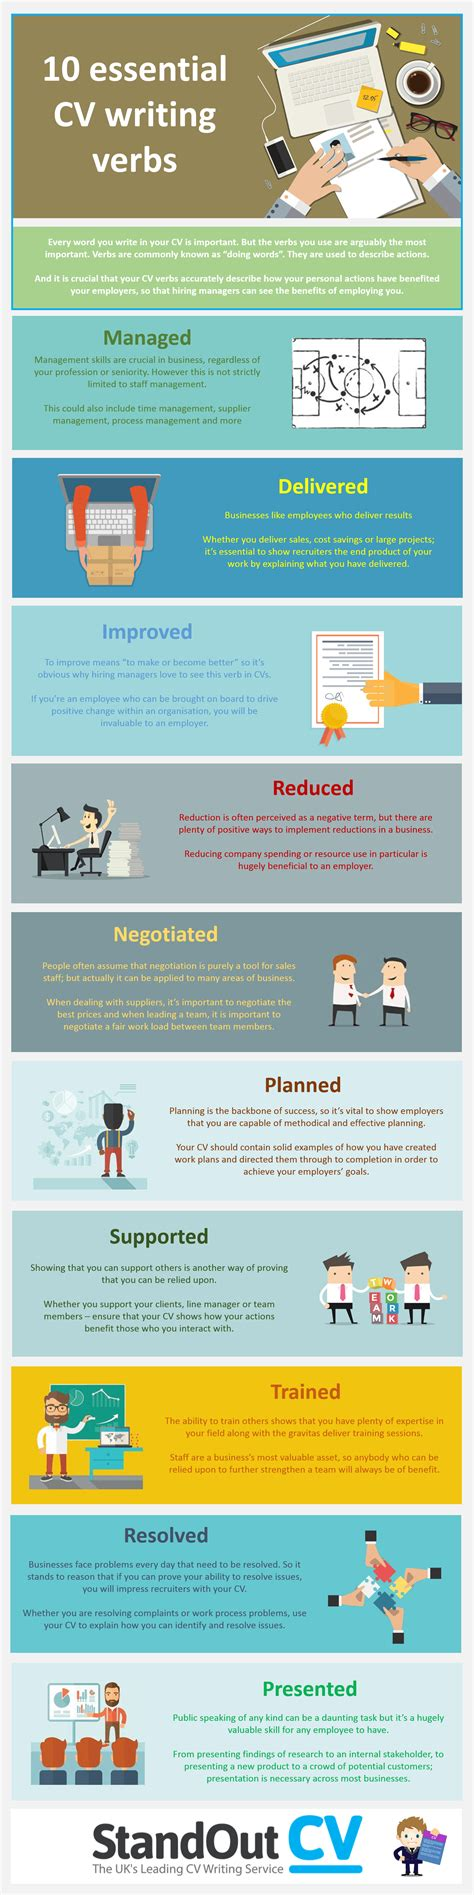 use these words on your cv to describe your experience